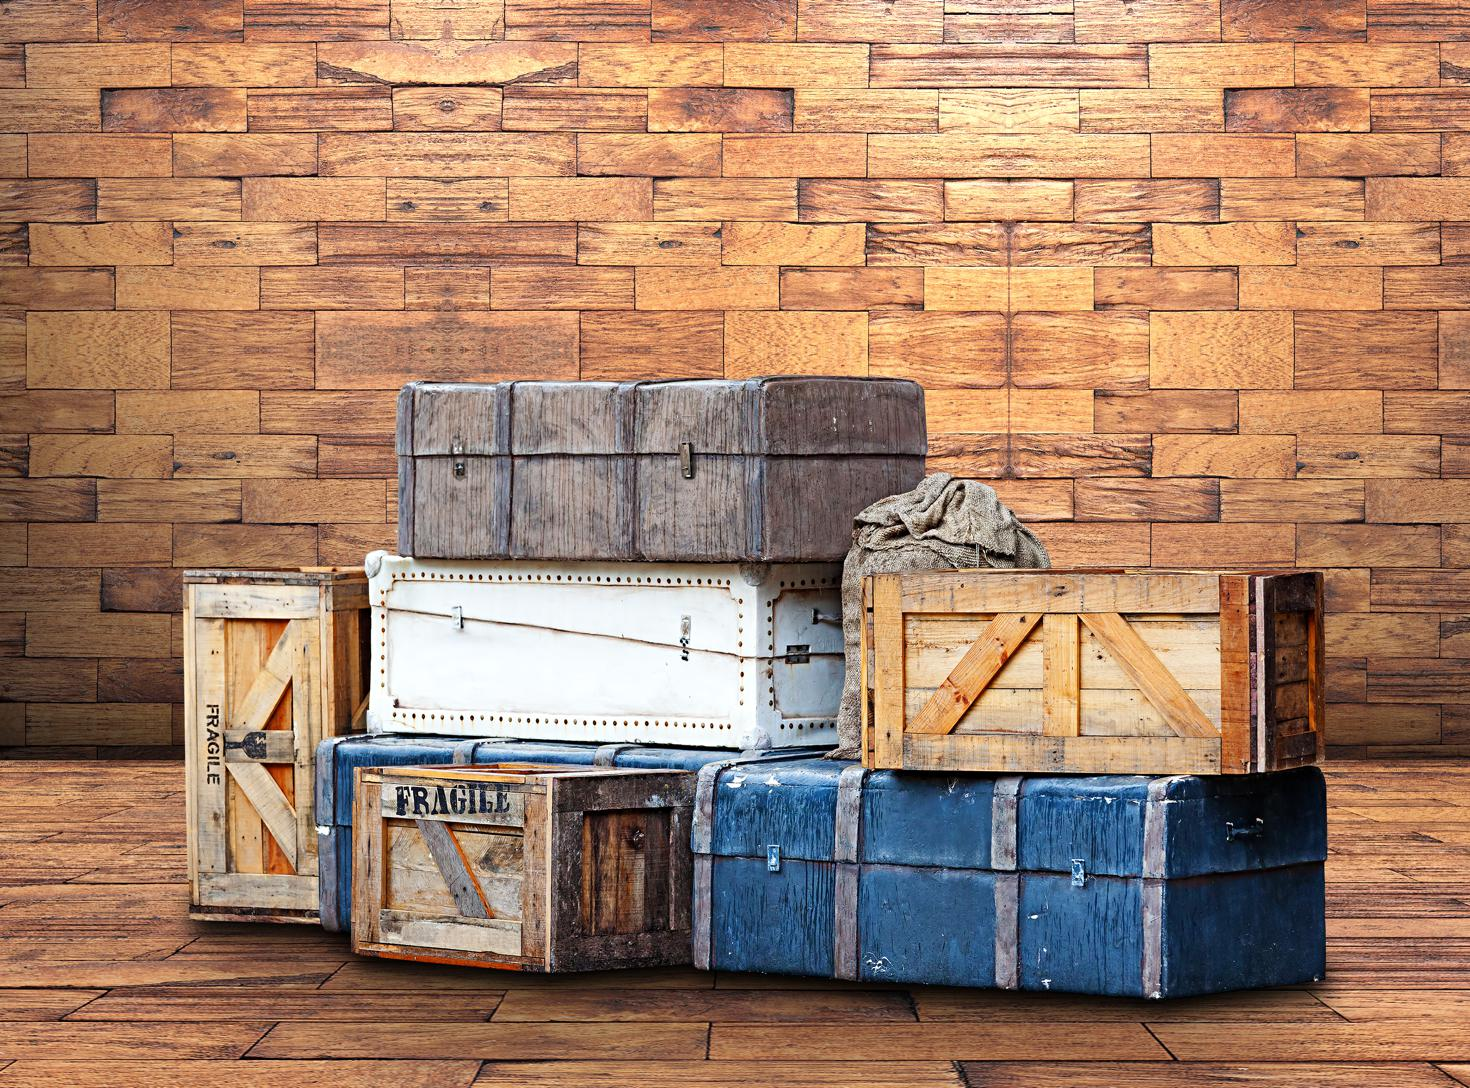 boxes with bizarre items in storage units